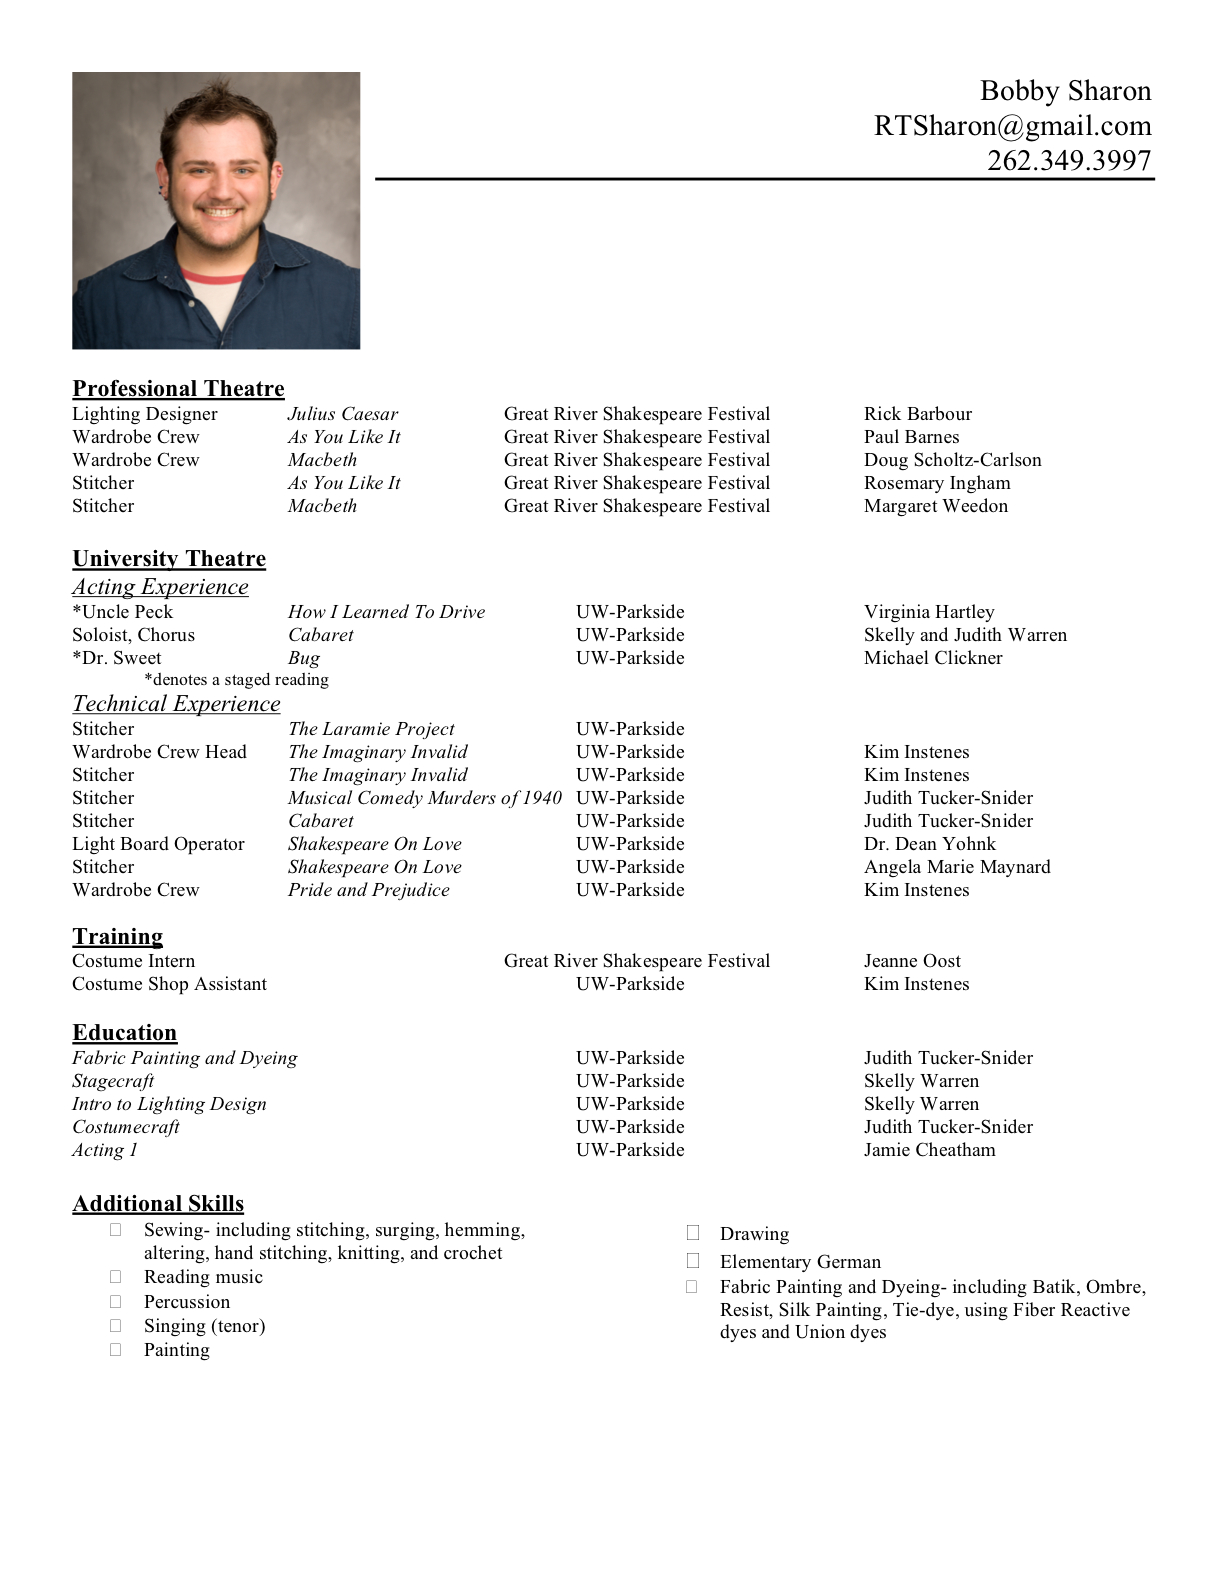 more specific cv sample please check resume format samples article